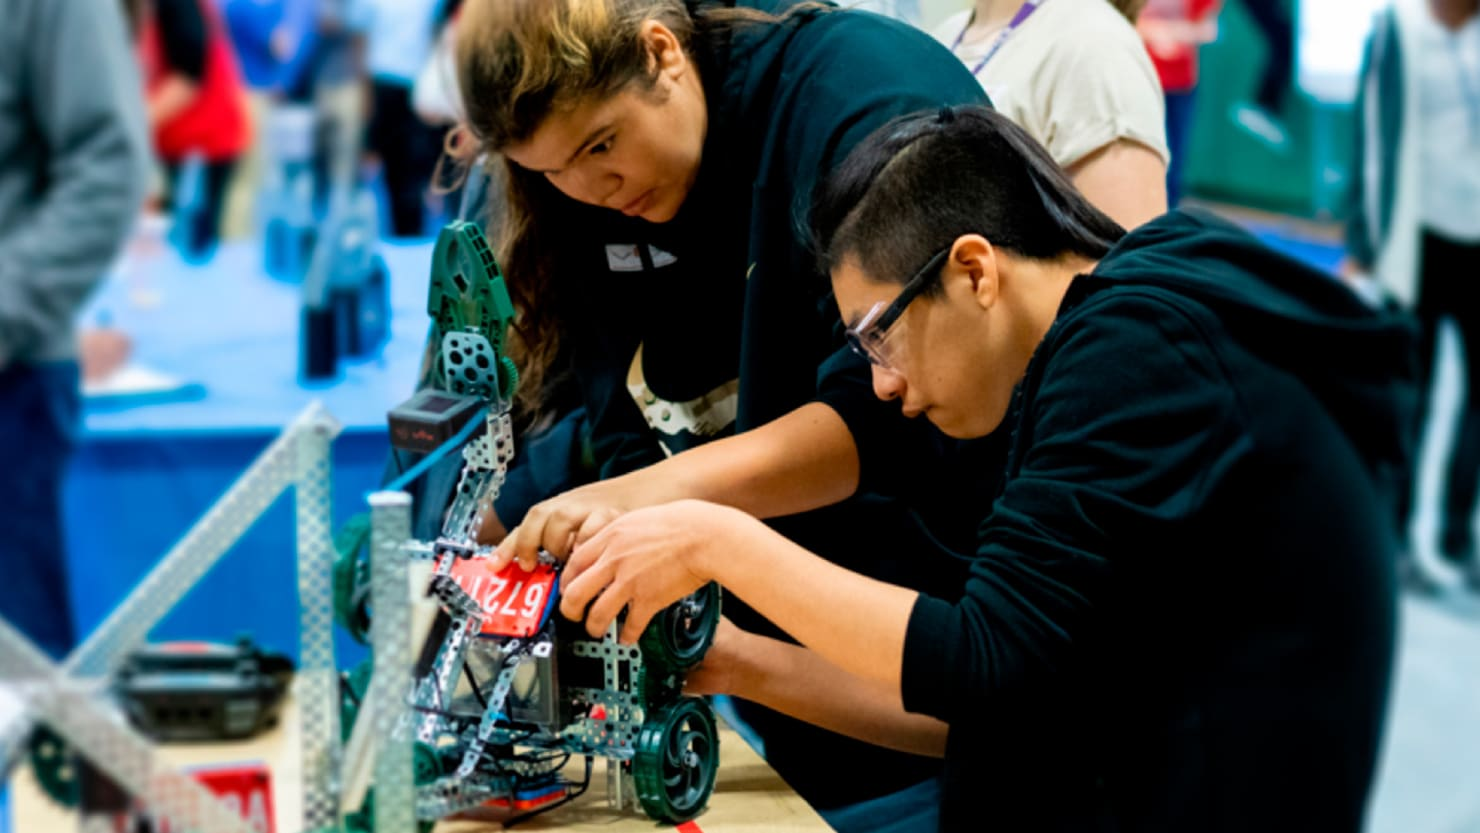 Robotics Grants Are Bringing Hands-On Learning to Classrooms at Inner-City Middle Schools